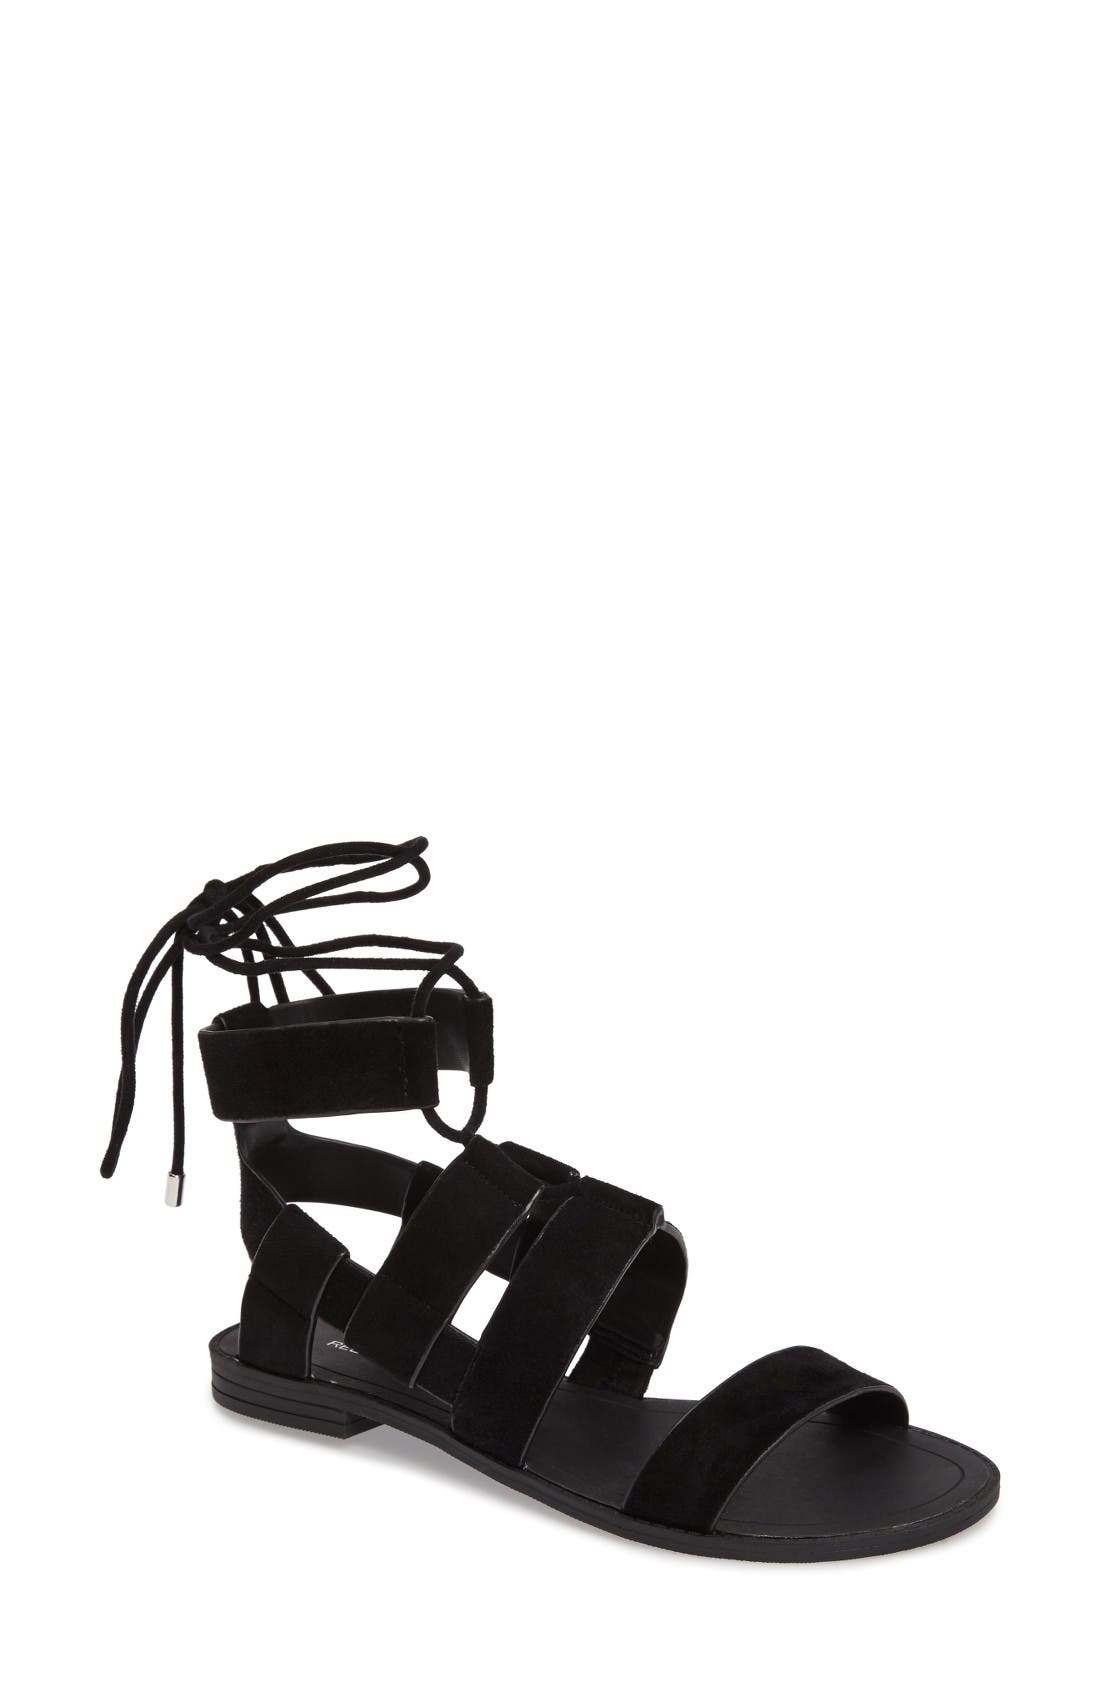 Alternate Image 1 Selected - Rebecca Minkoff Giada Strappy Sandal (Women)